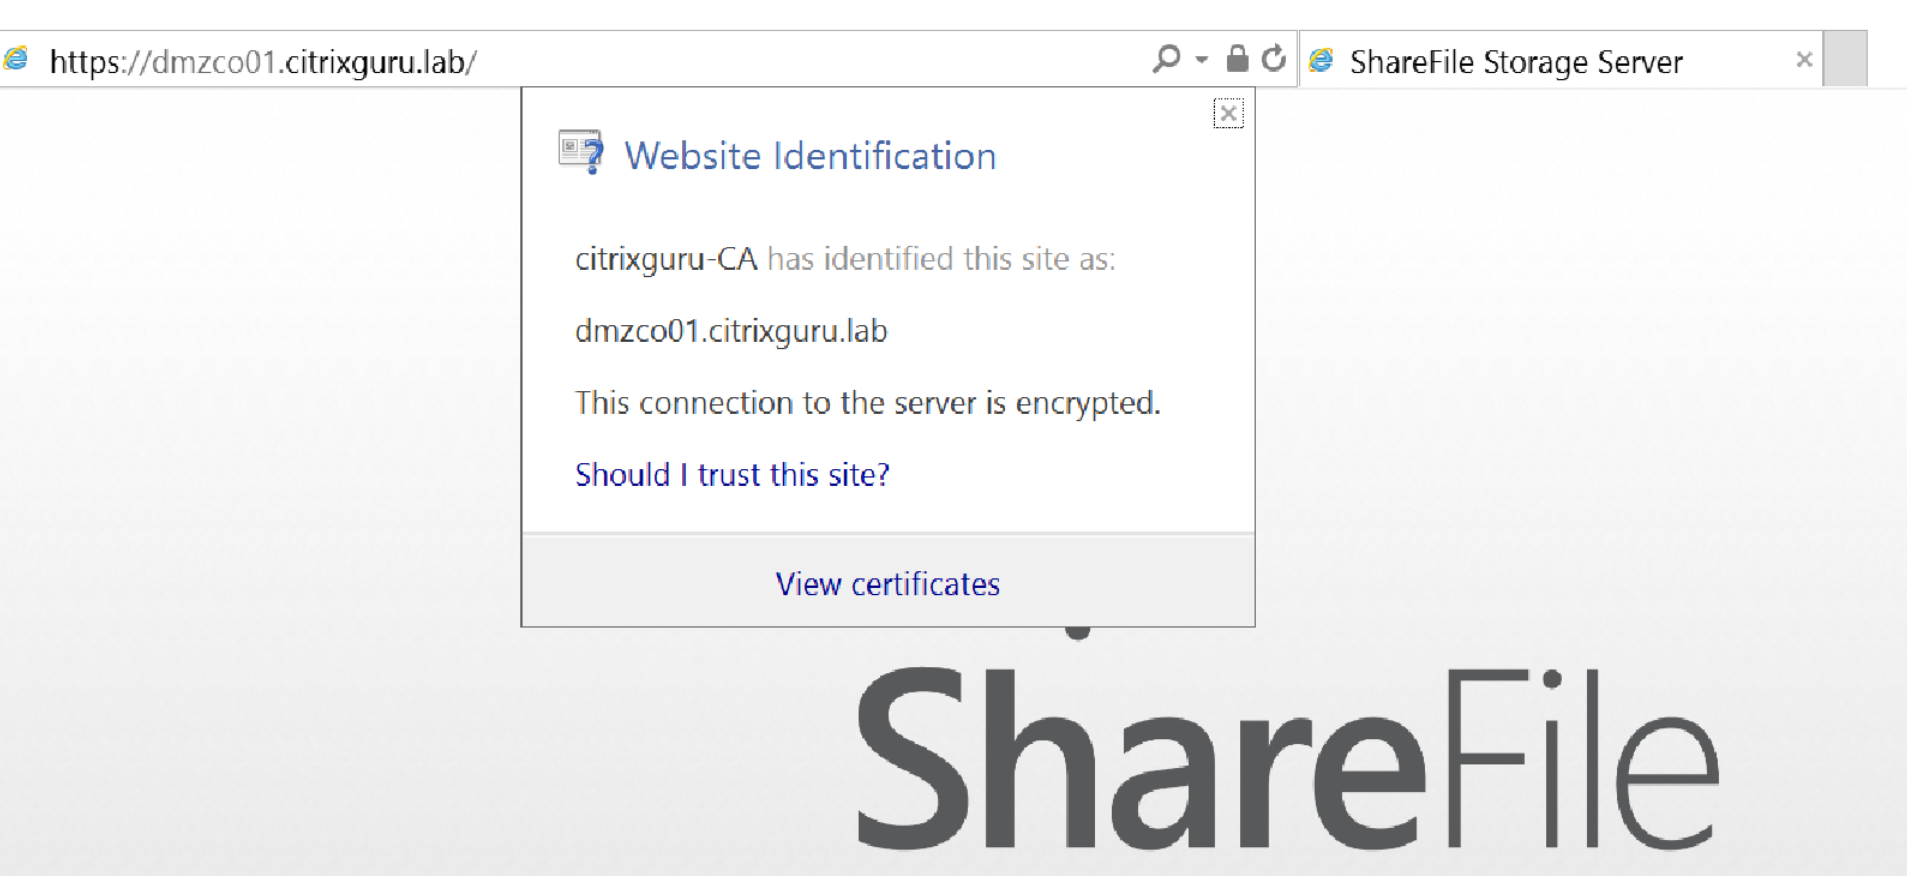 Citrix ShareFile StorageZones Controller - Secured with SSL